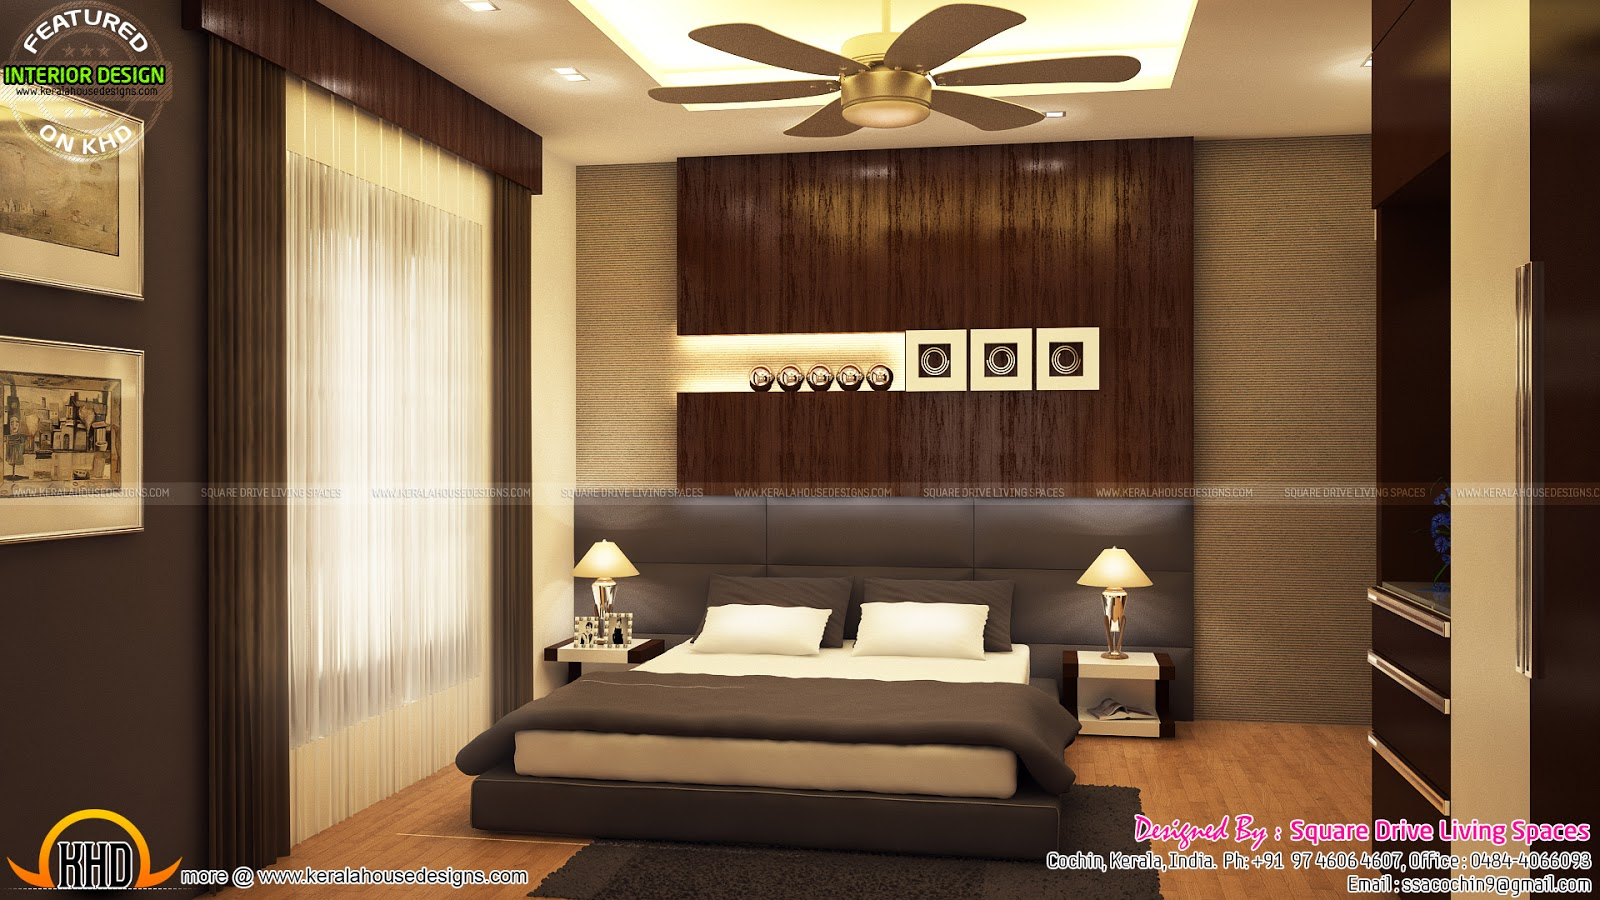 Interior designs of master bedroom living kitchen and for Interior bed design images